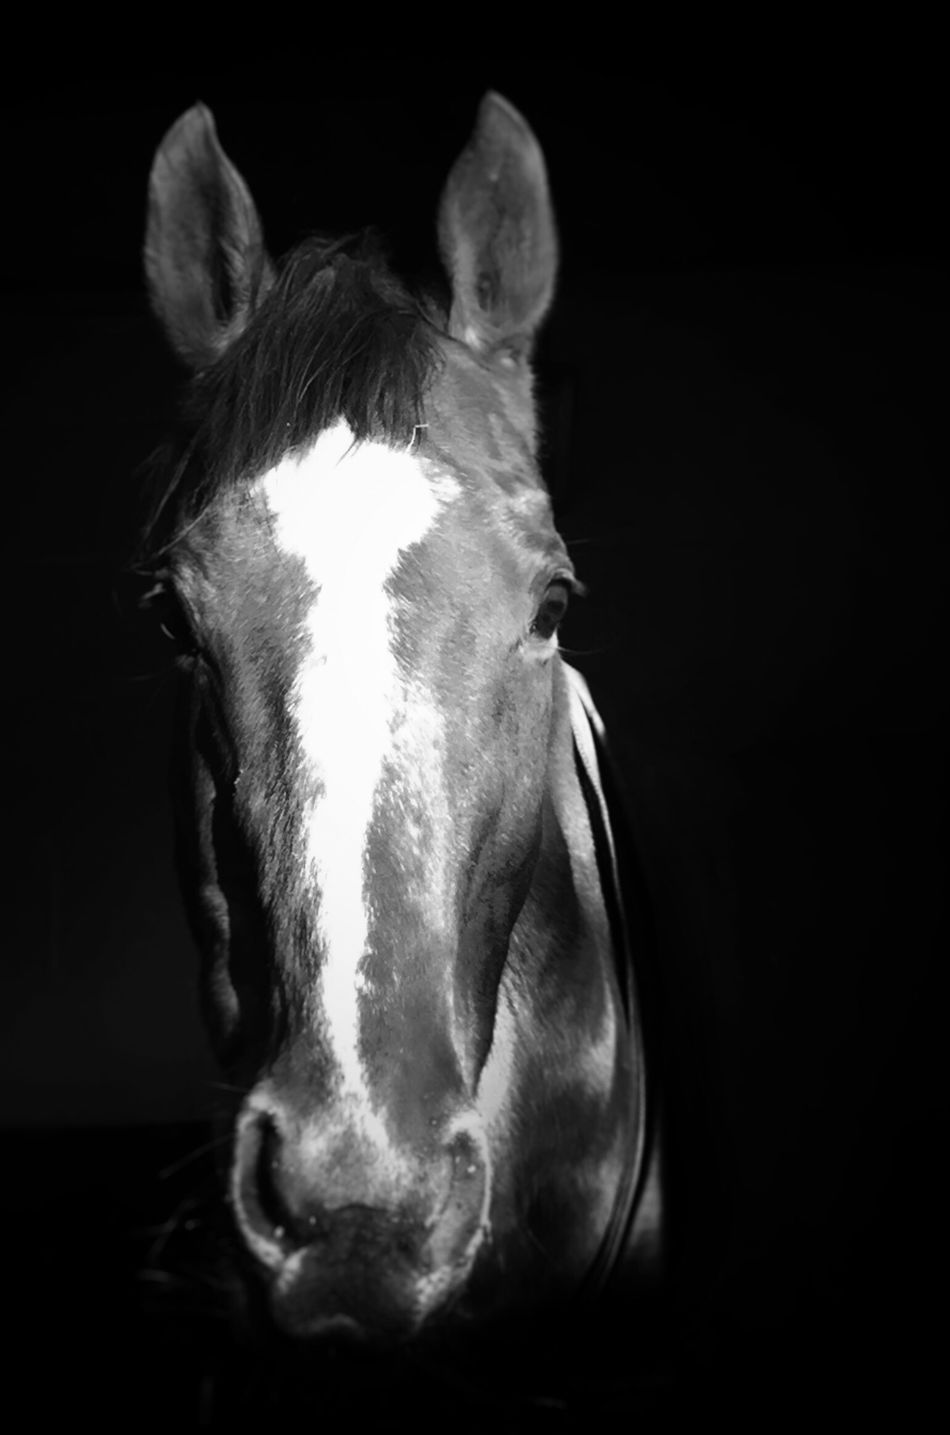 One Animal Pets Horse Exracehorse Black And White Cold Winter ❄⛄ Equestrian Love ♥ No People Pretty♡ Freshair Working Outdoors Equine Photography Horselife